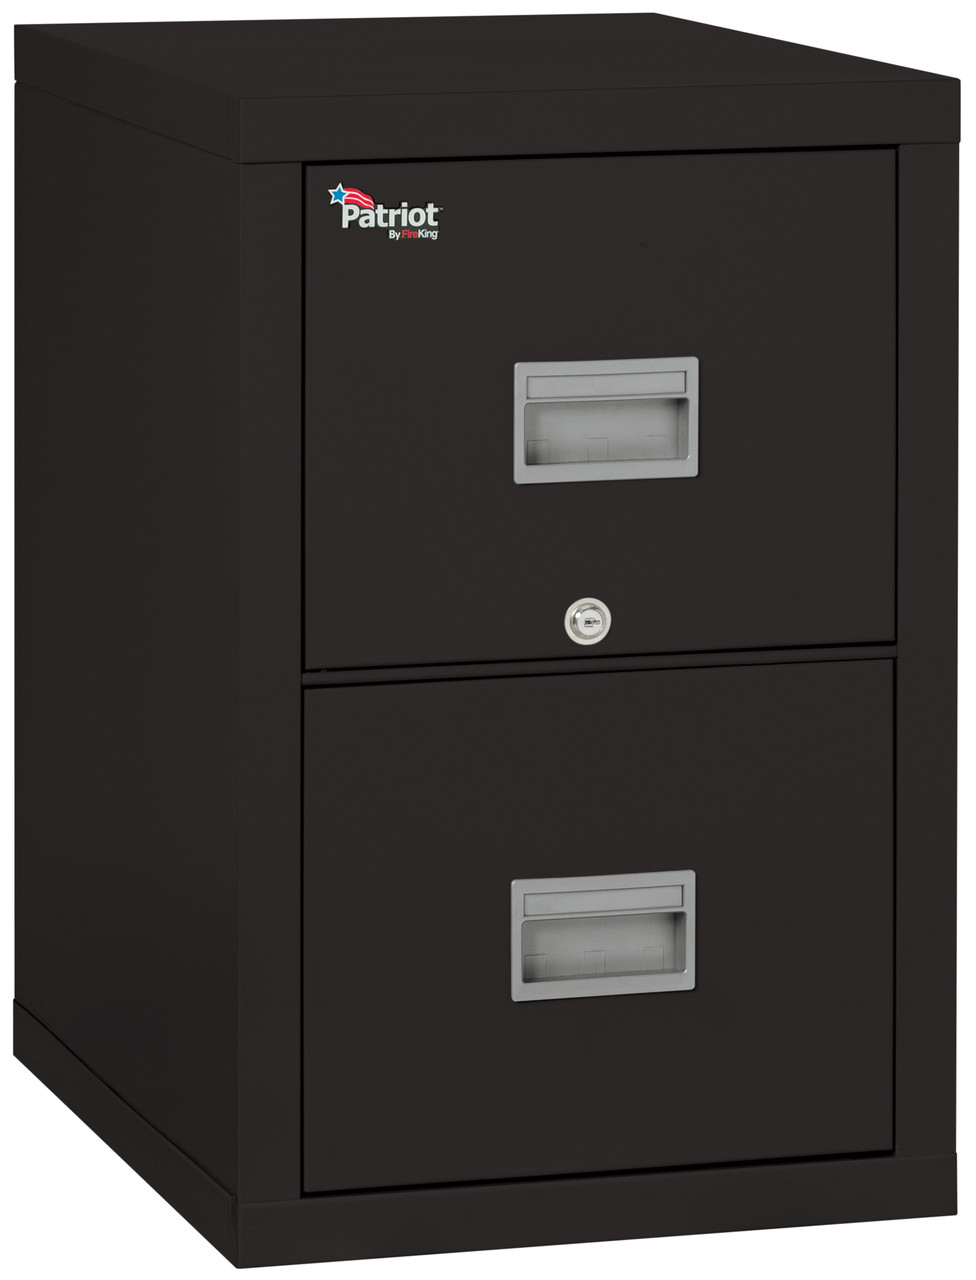 Fireking Patriot 2 Drawer Fireproof Vertical File Cabinet